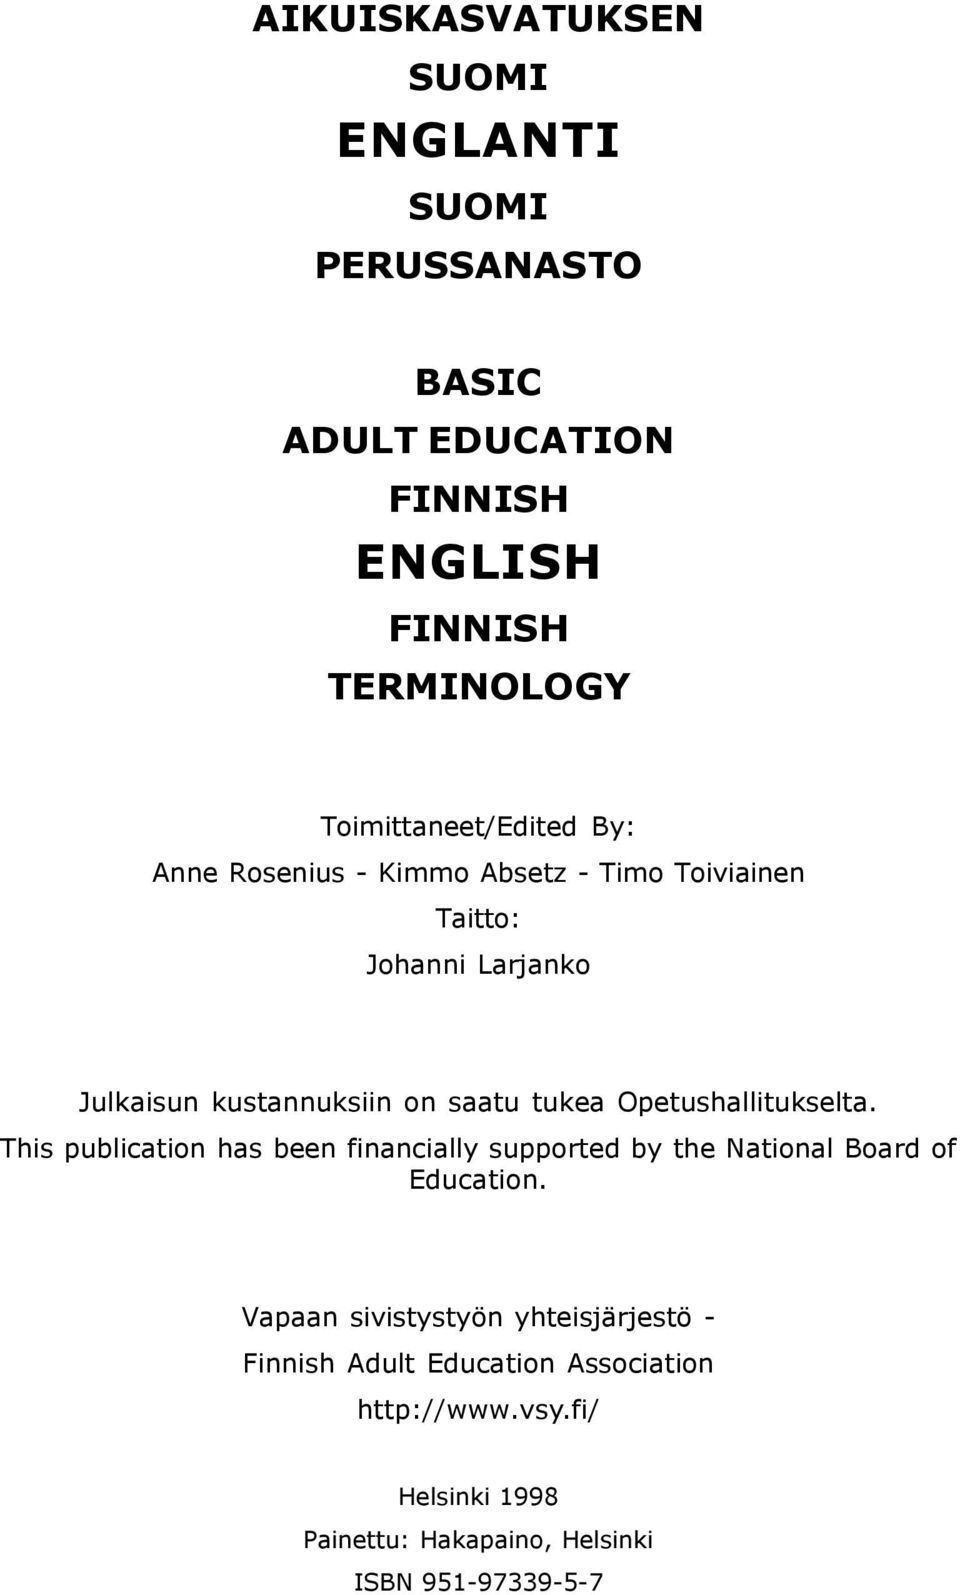 saatu tukea Opetushallitukselta. This publication has been financially supported by the National Board of Education.